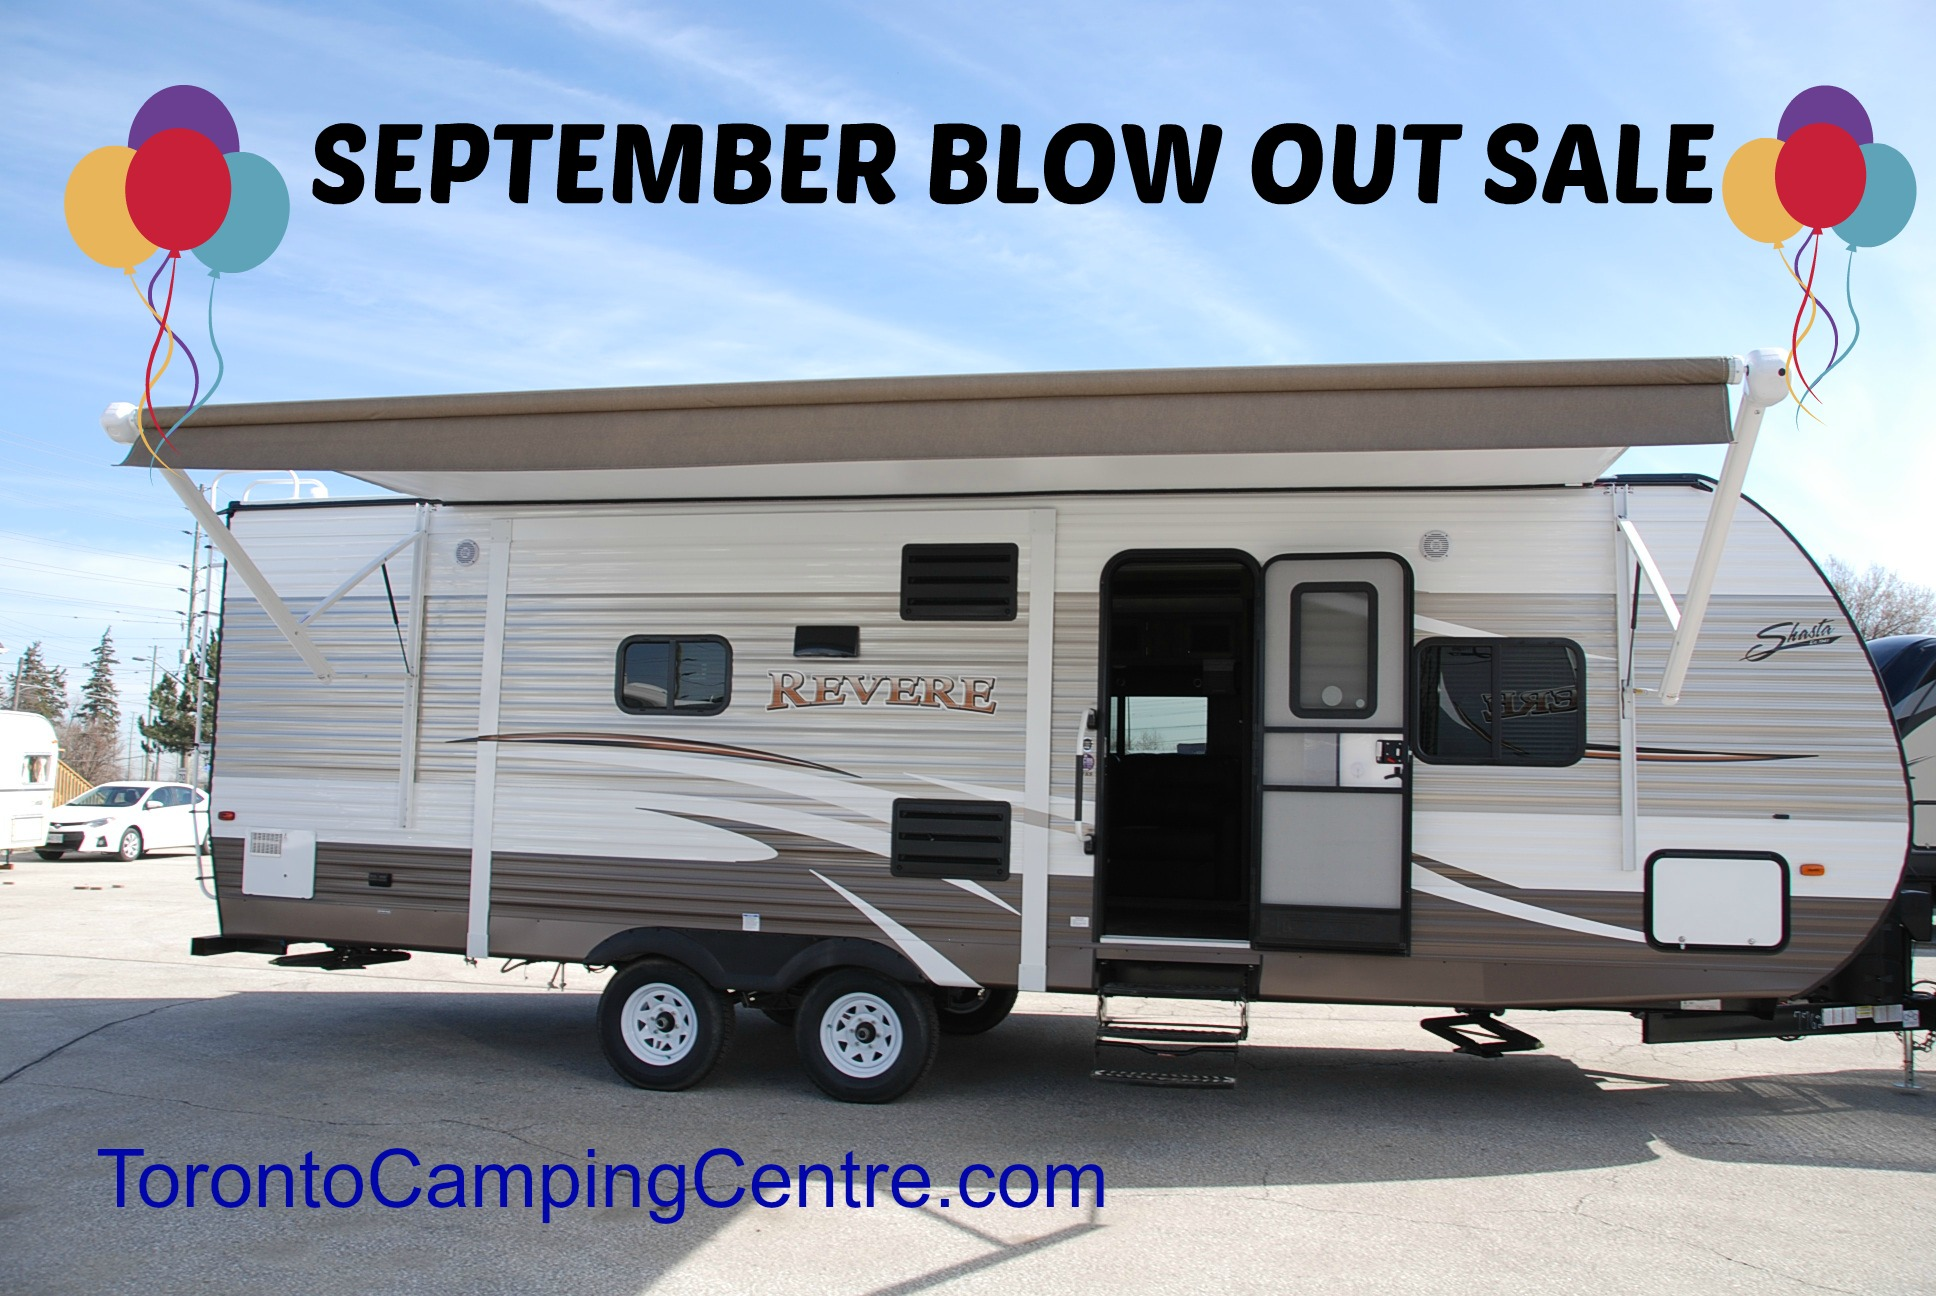 SEPTEMBER BLOW OUT SALE